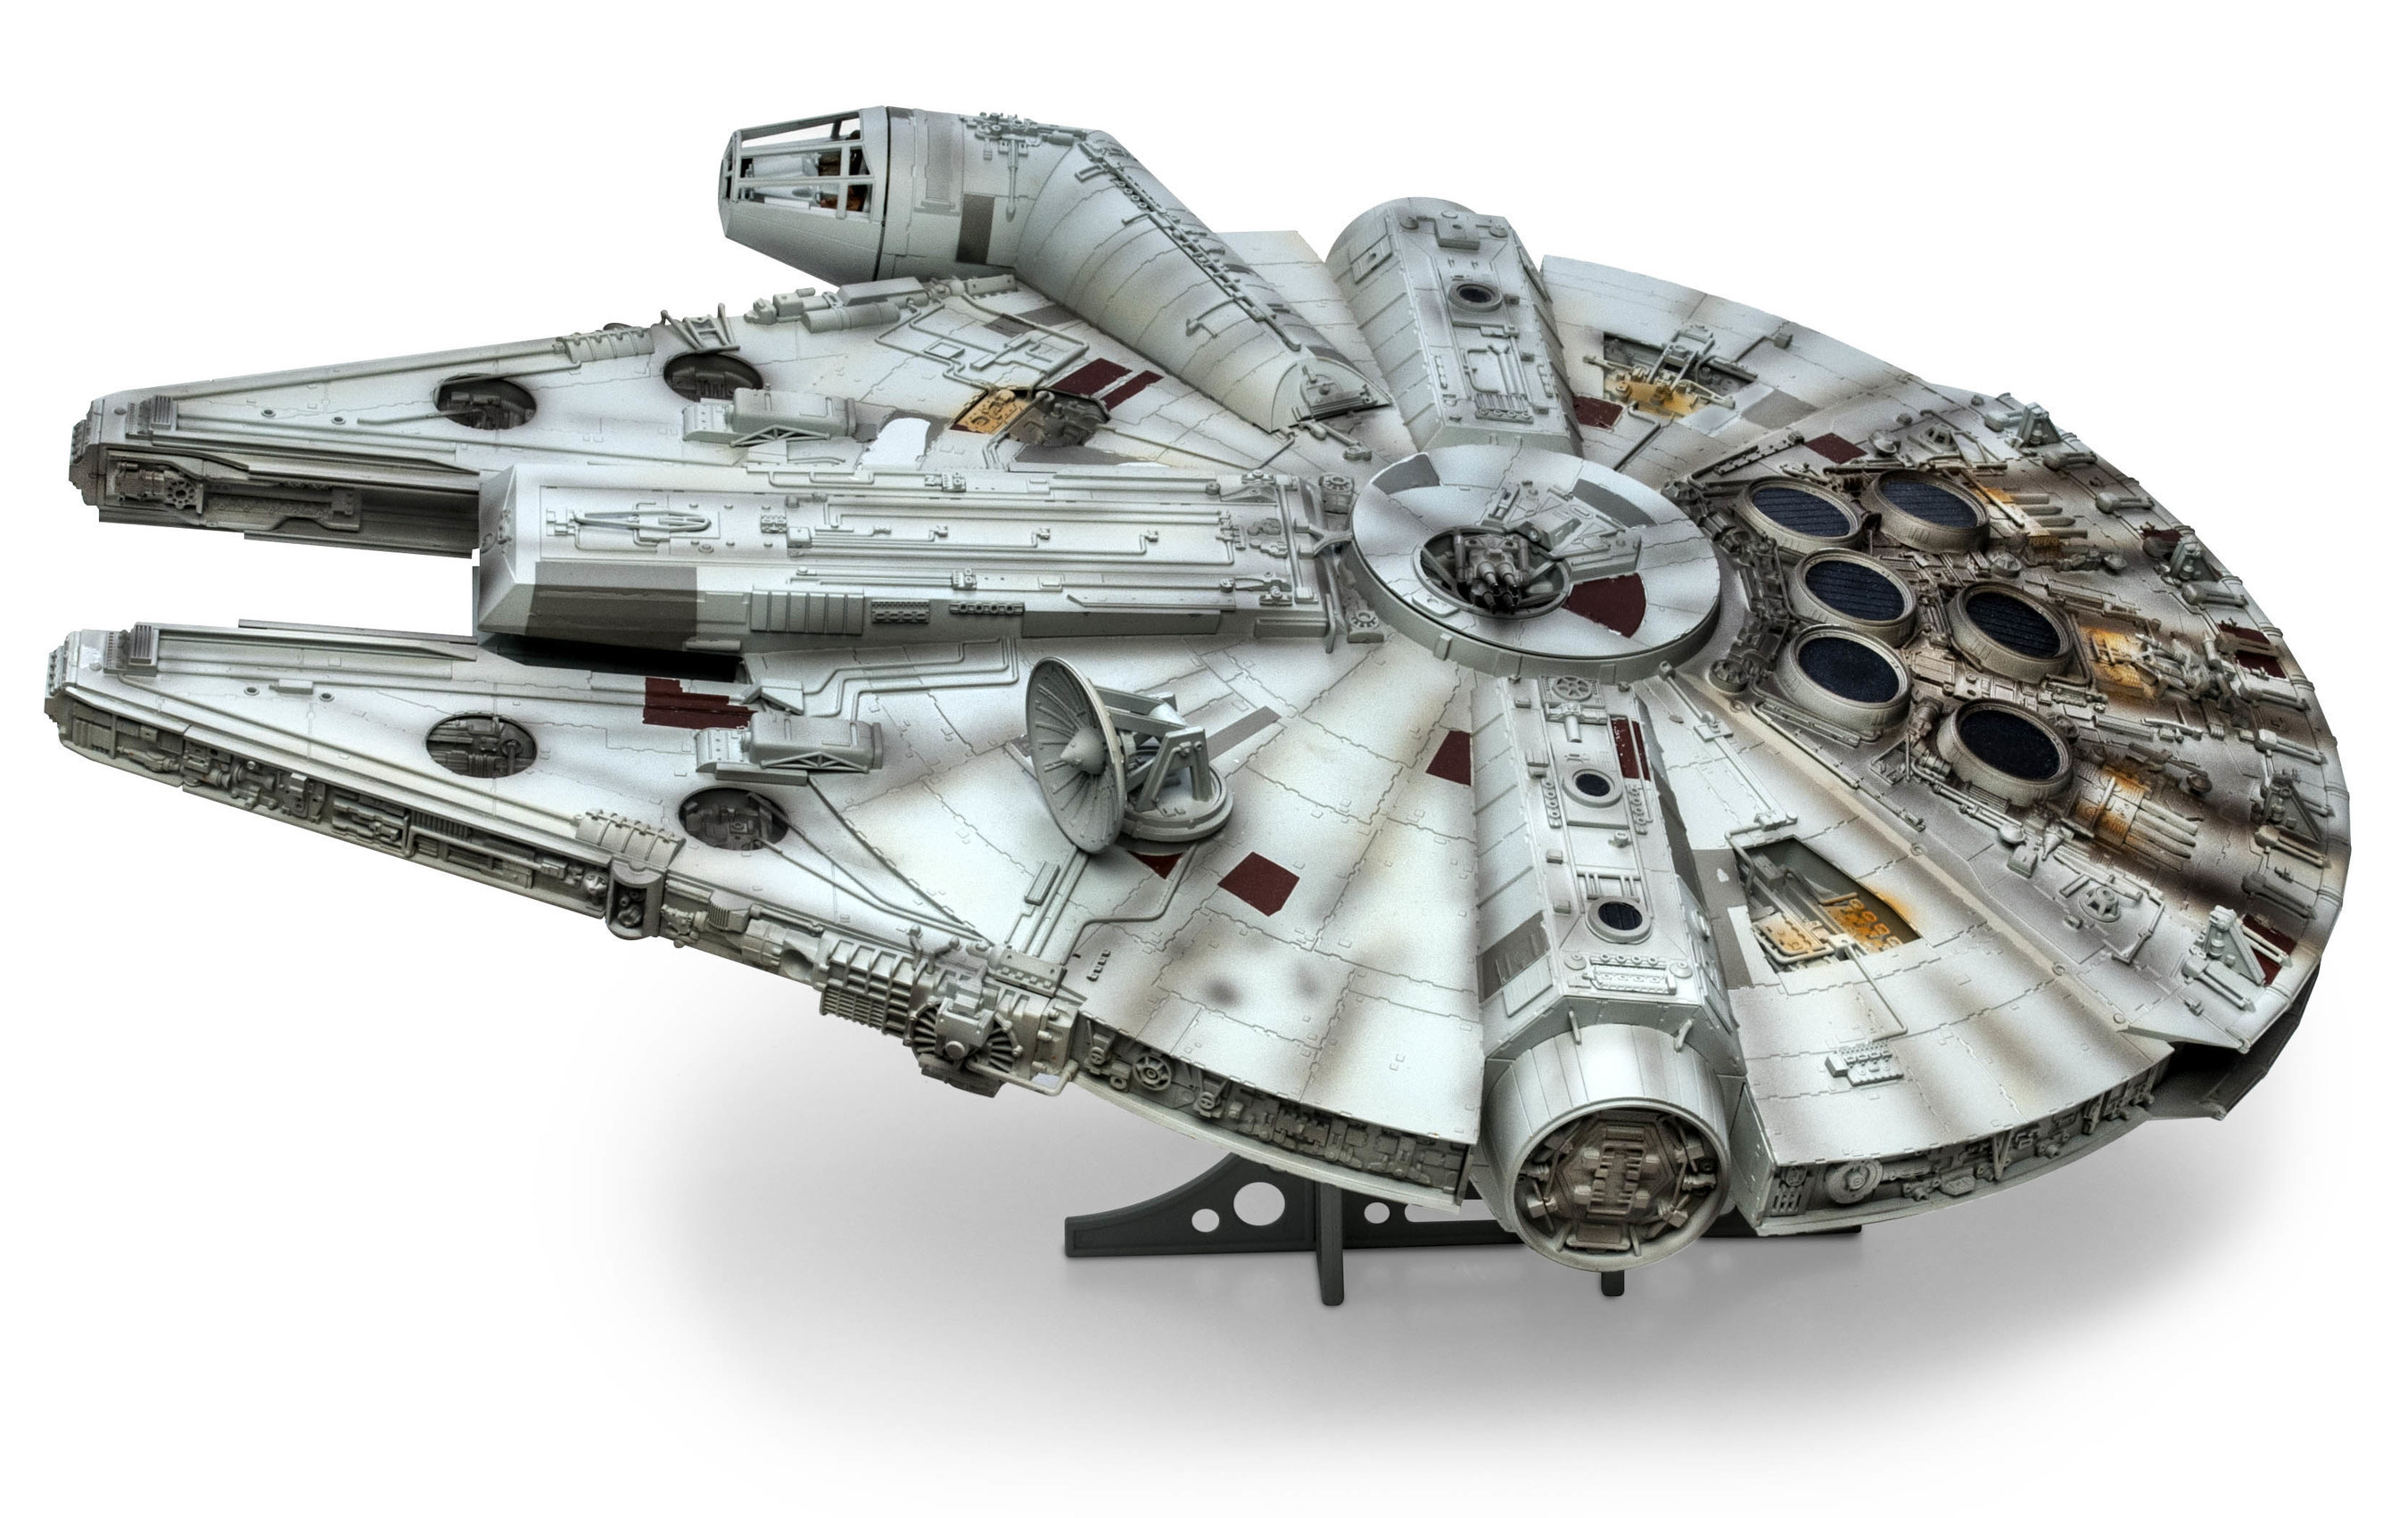 Star Wars Model Kits with Up to 900 Pieces -- from Revell'